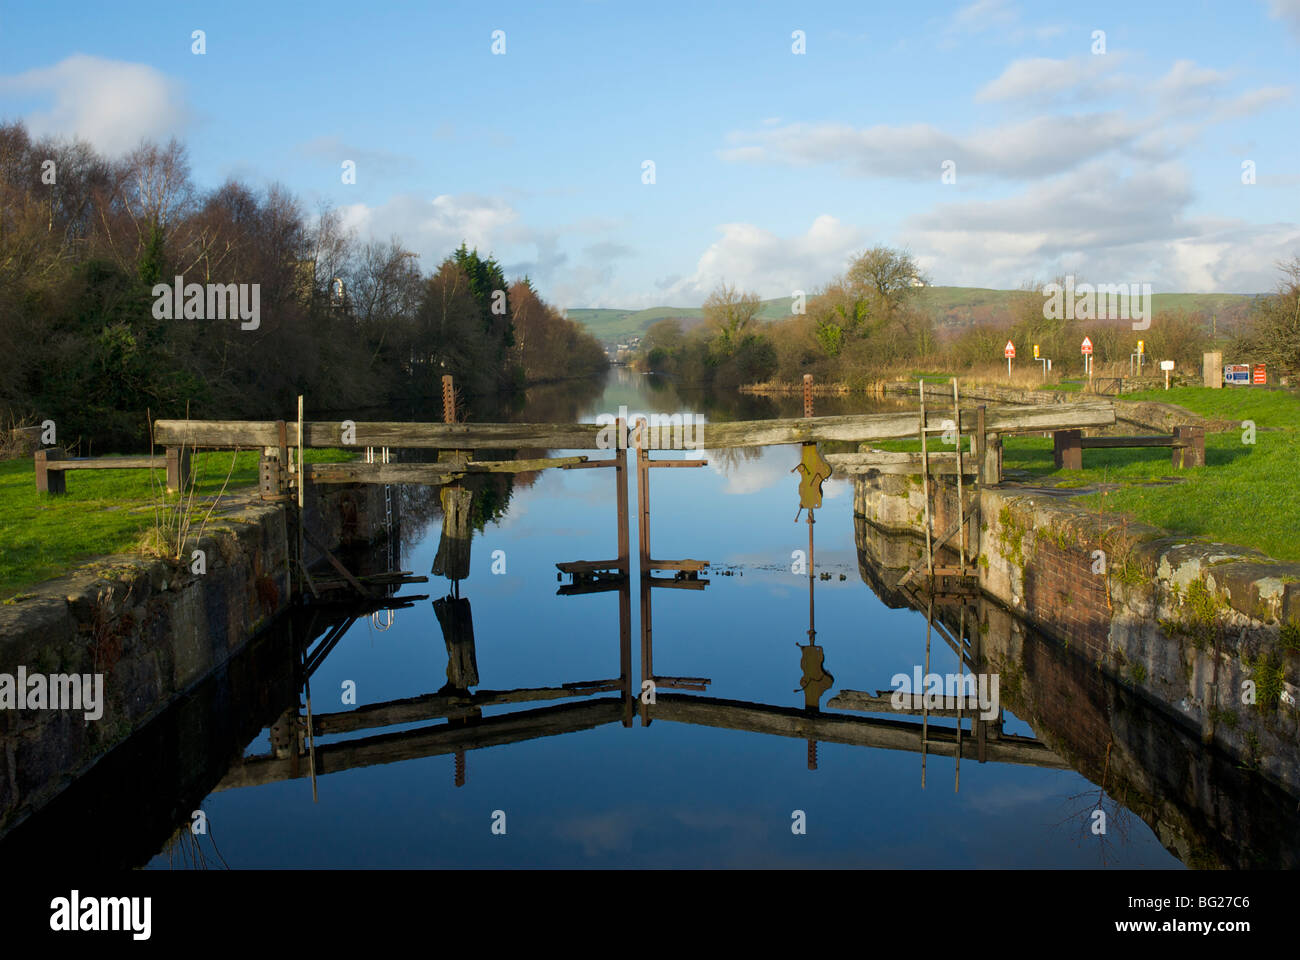 The derelict lock gates of the Ulverston Canal, Cumbria, England UK - Stock Image